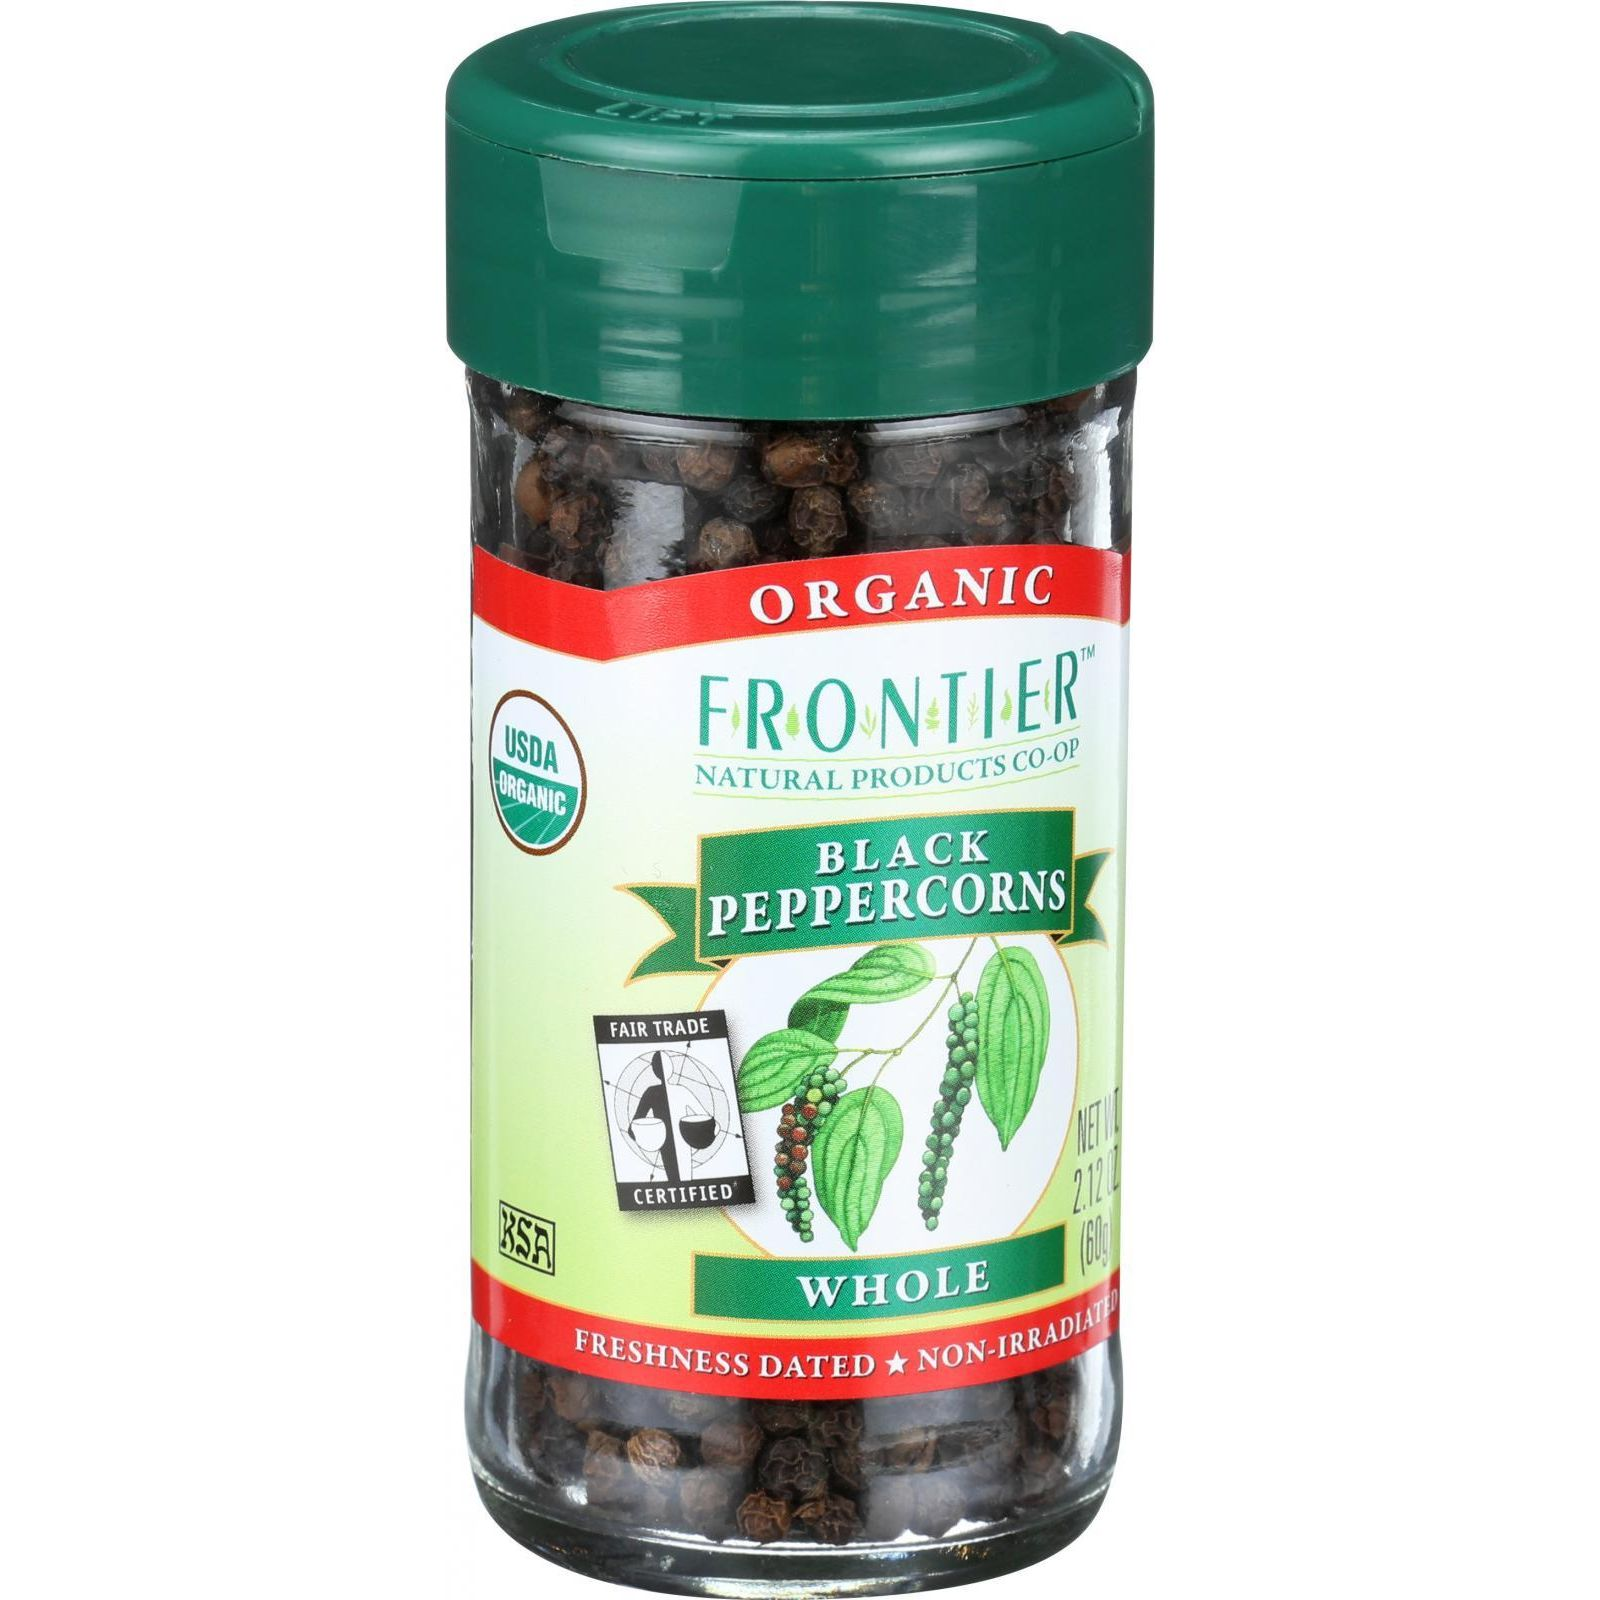 Frontier Herb Peppercorns - Organic - Fair Trade Certified - Whole - Black - 2.12 oz